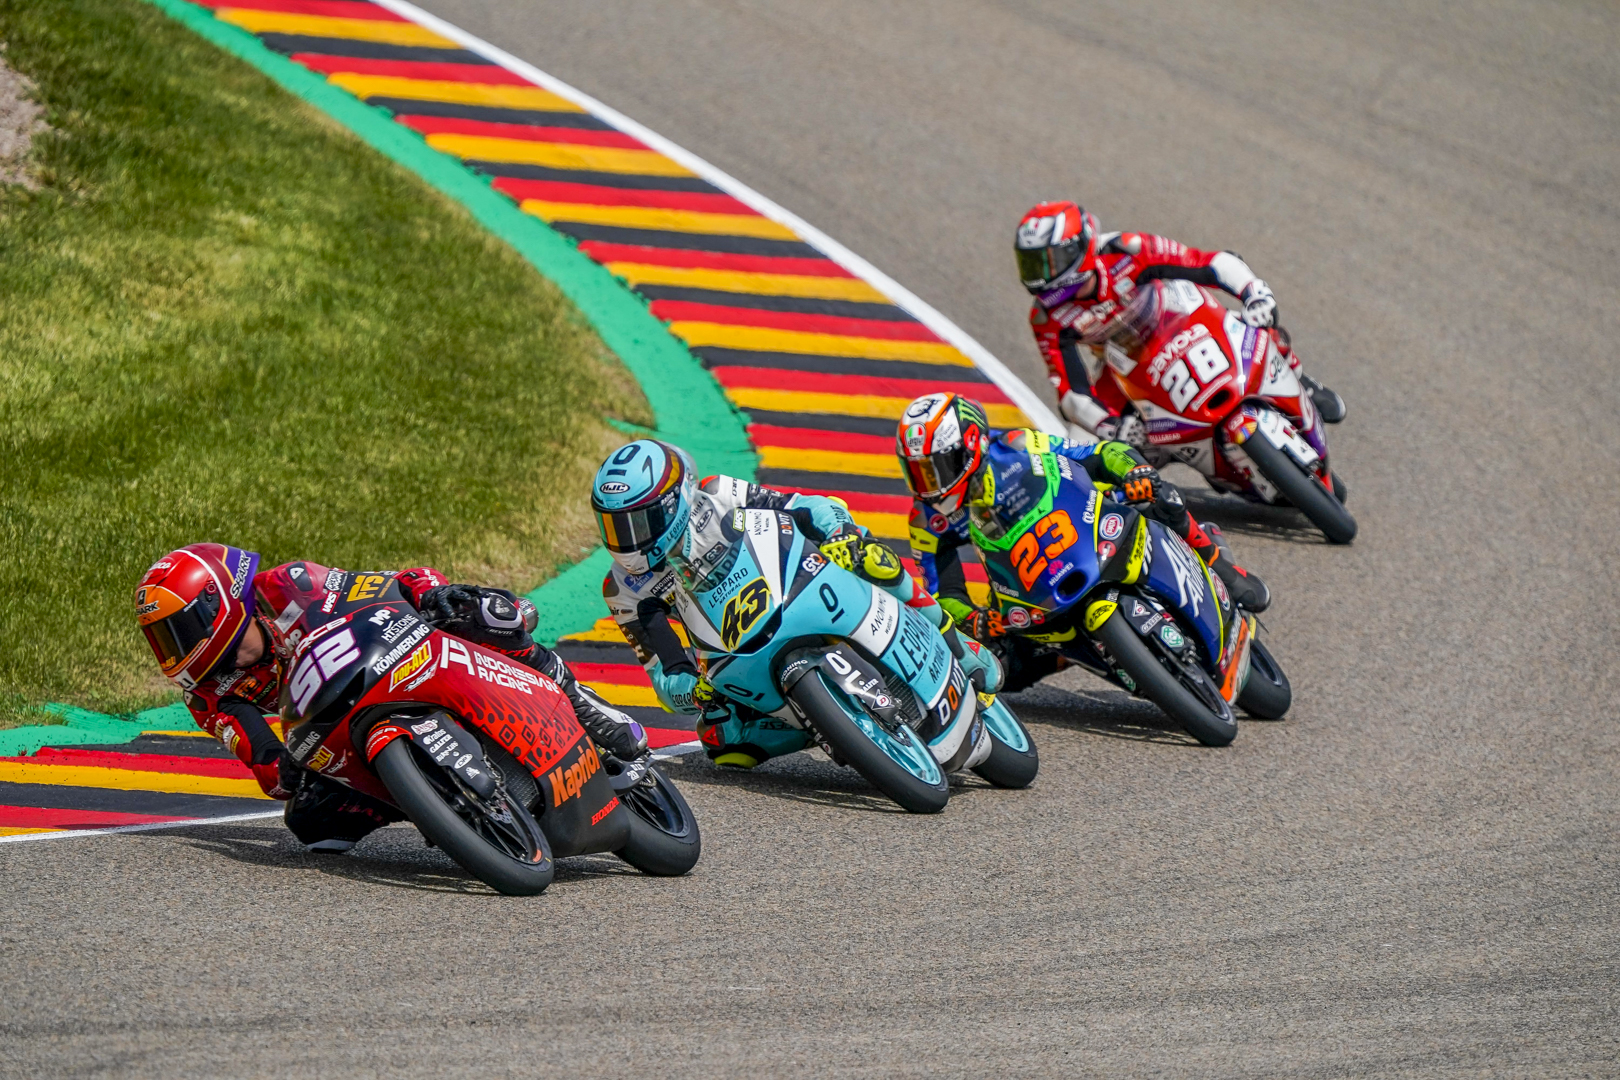 Alcoba bounces back in style at the Sachsenring #GermanGP